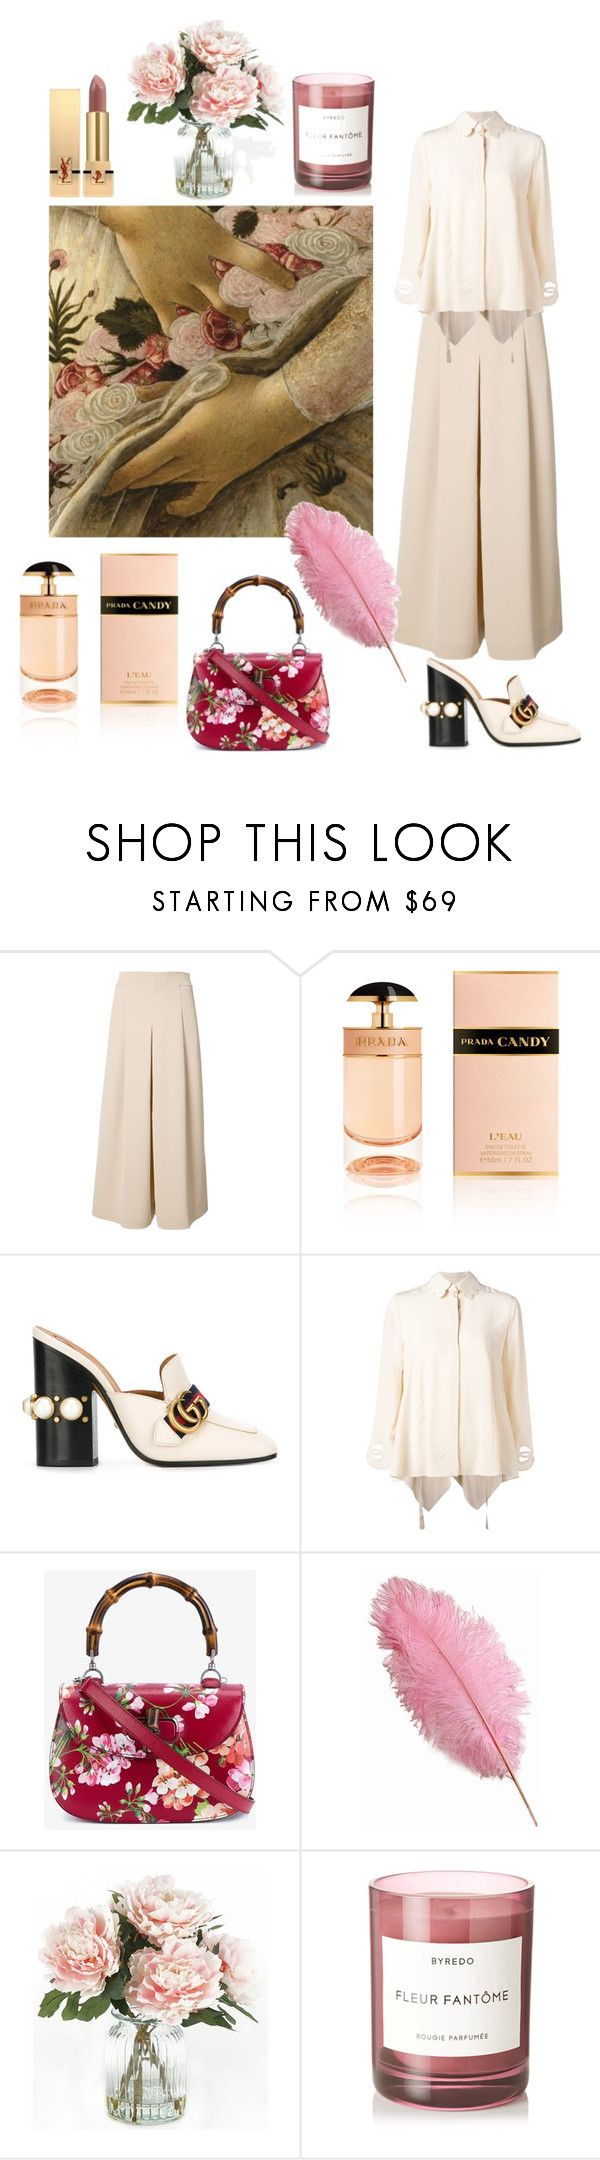 """Spring shades"" by whoisdada on Polyvore featuring bellezza, TIBI, Prada, Gucci, Fendi, Home Decorators Collection, Byredo e Yves Saint Laurent"